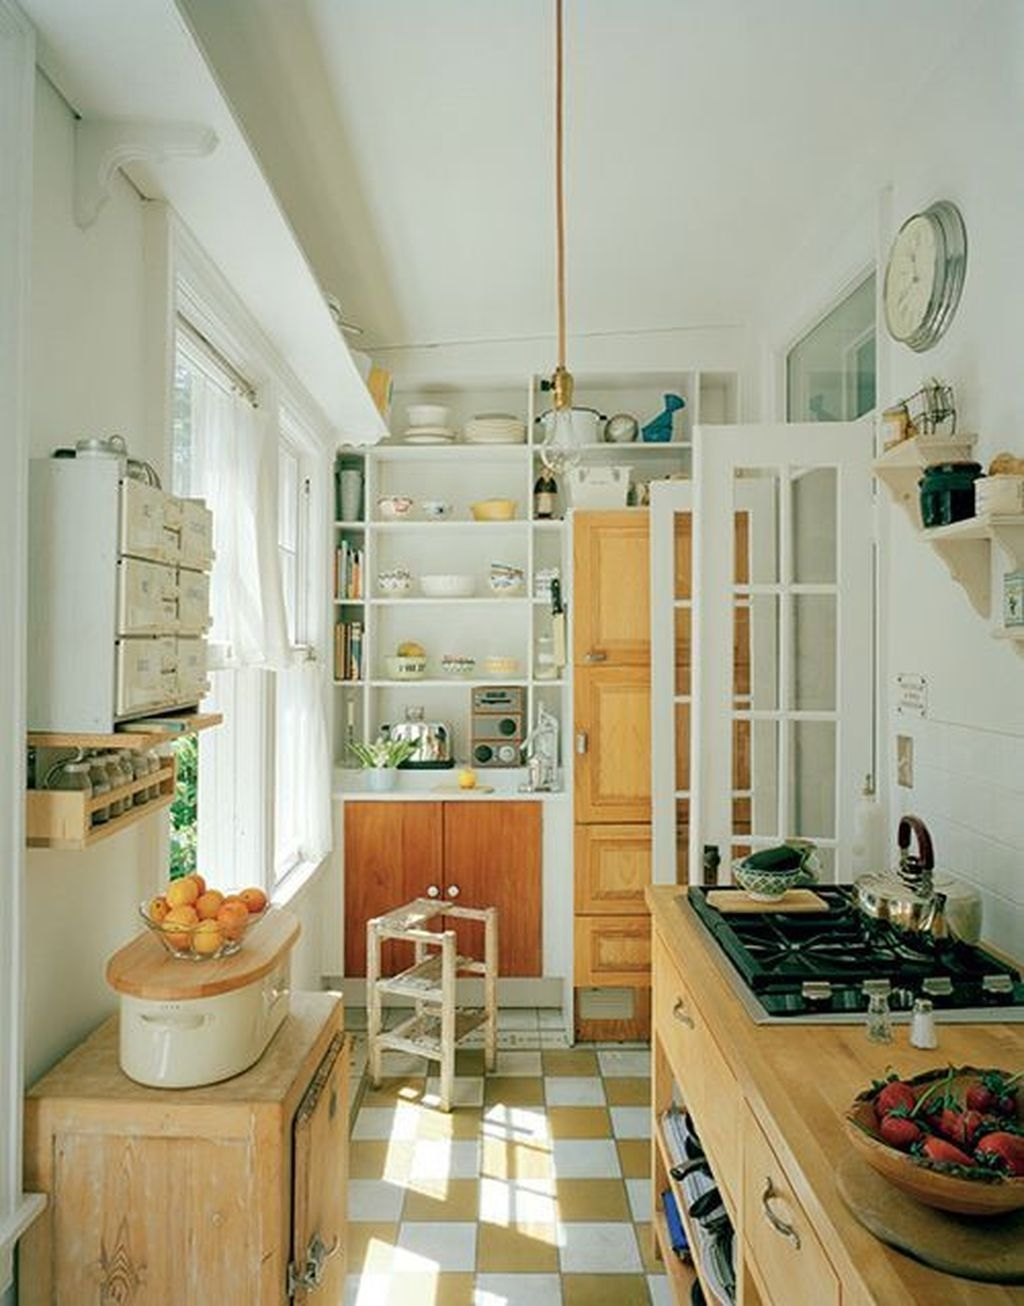 Adorable Simple Kitchen Design Ideas32